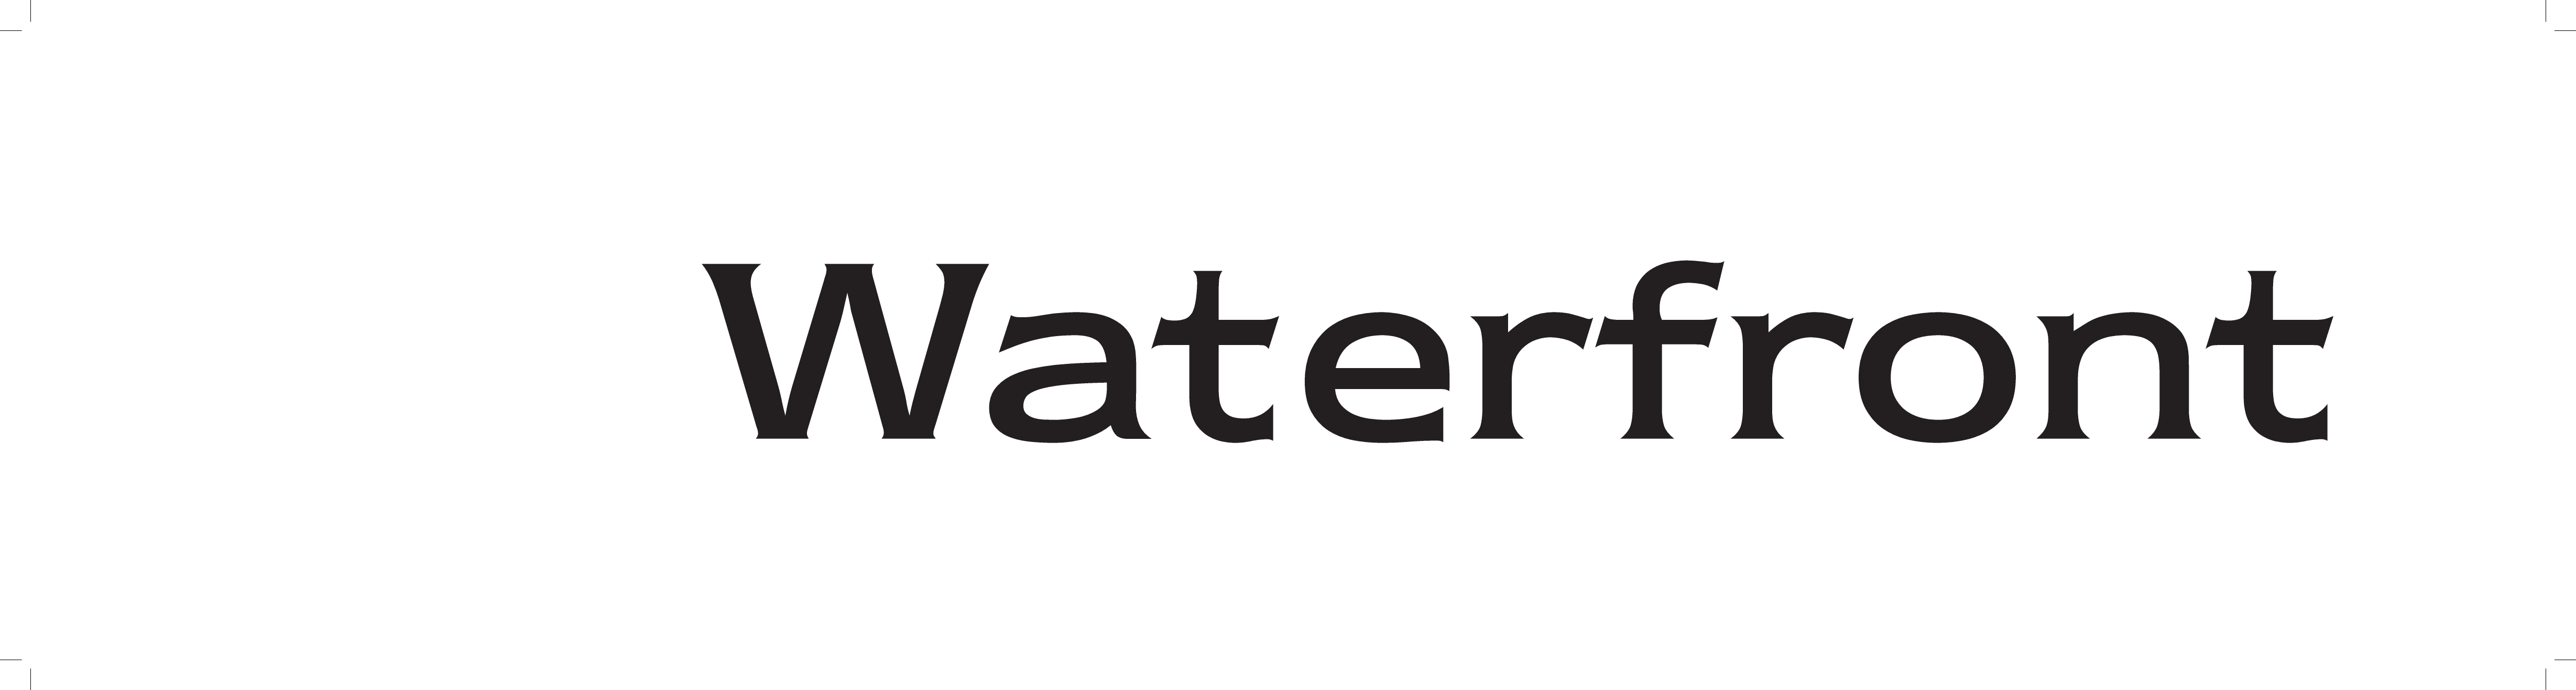 1   Waterfront